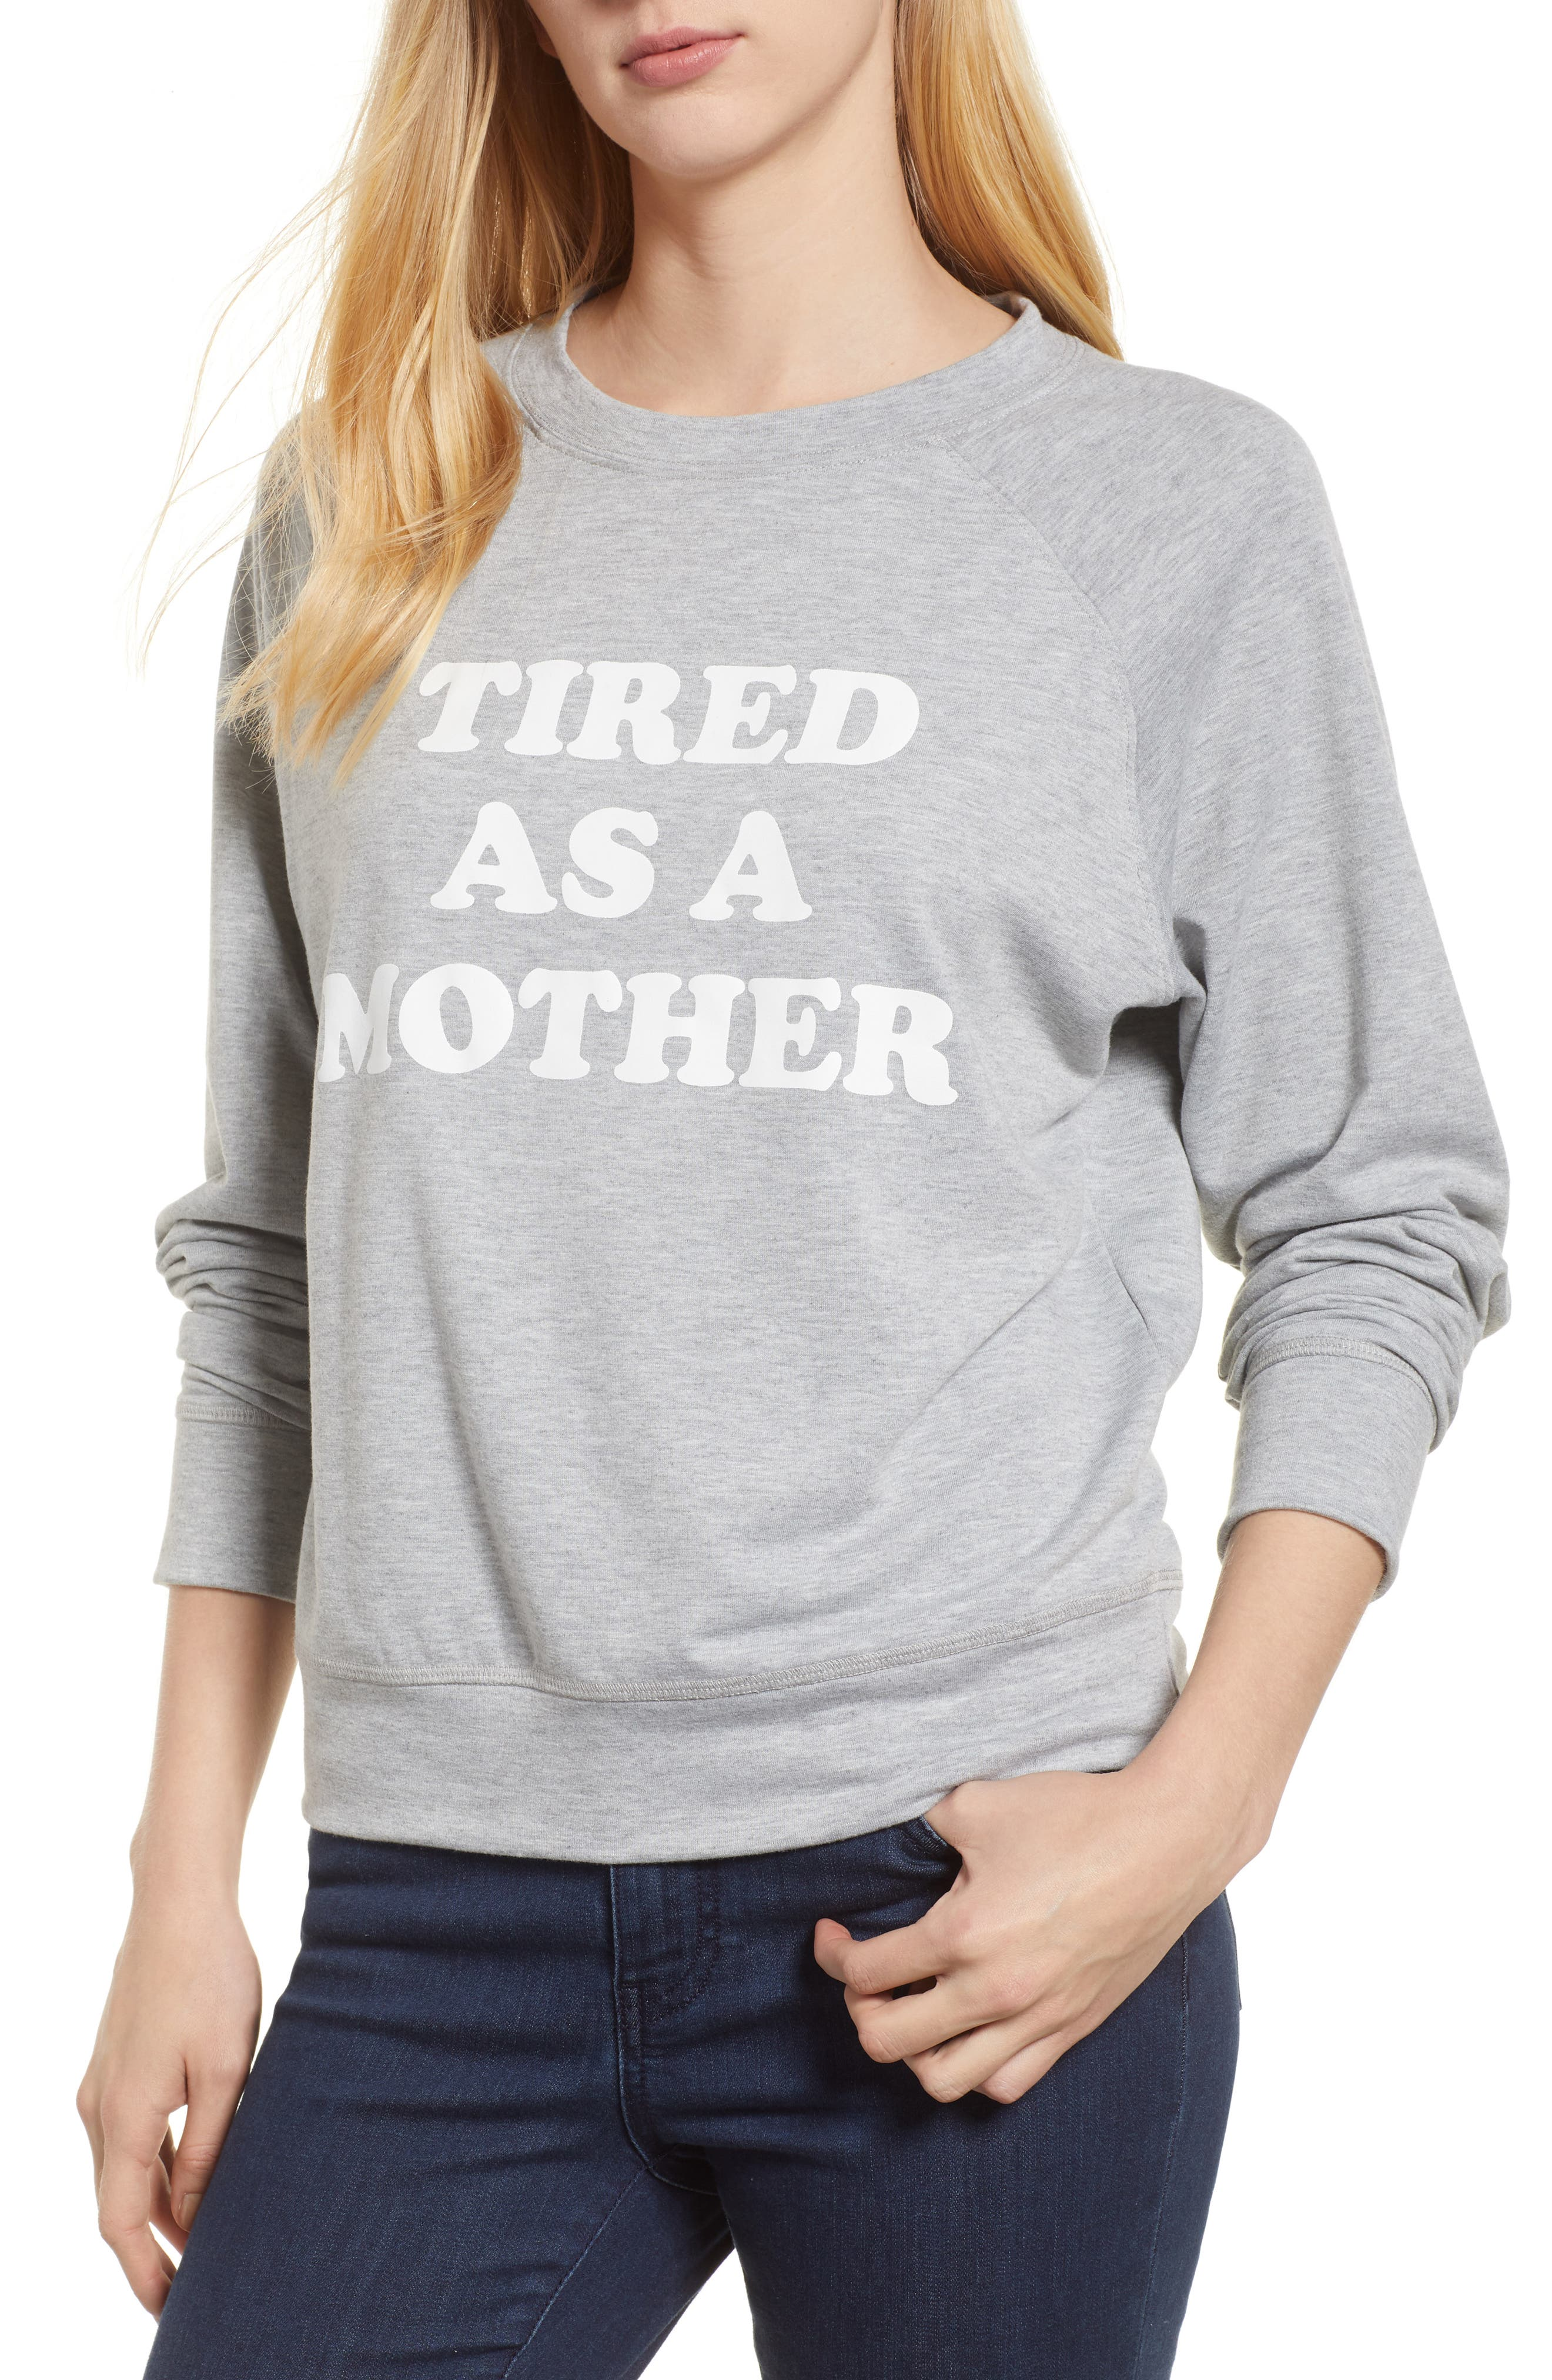 Off-Duty Tired as a Mother Sweatshirt,                             Main thumbnail 1, color,                             Grey Heather